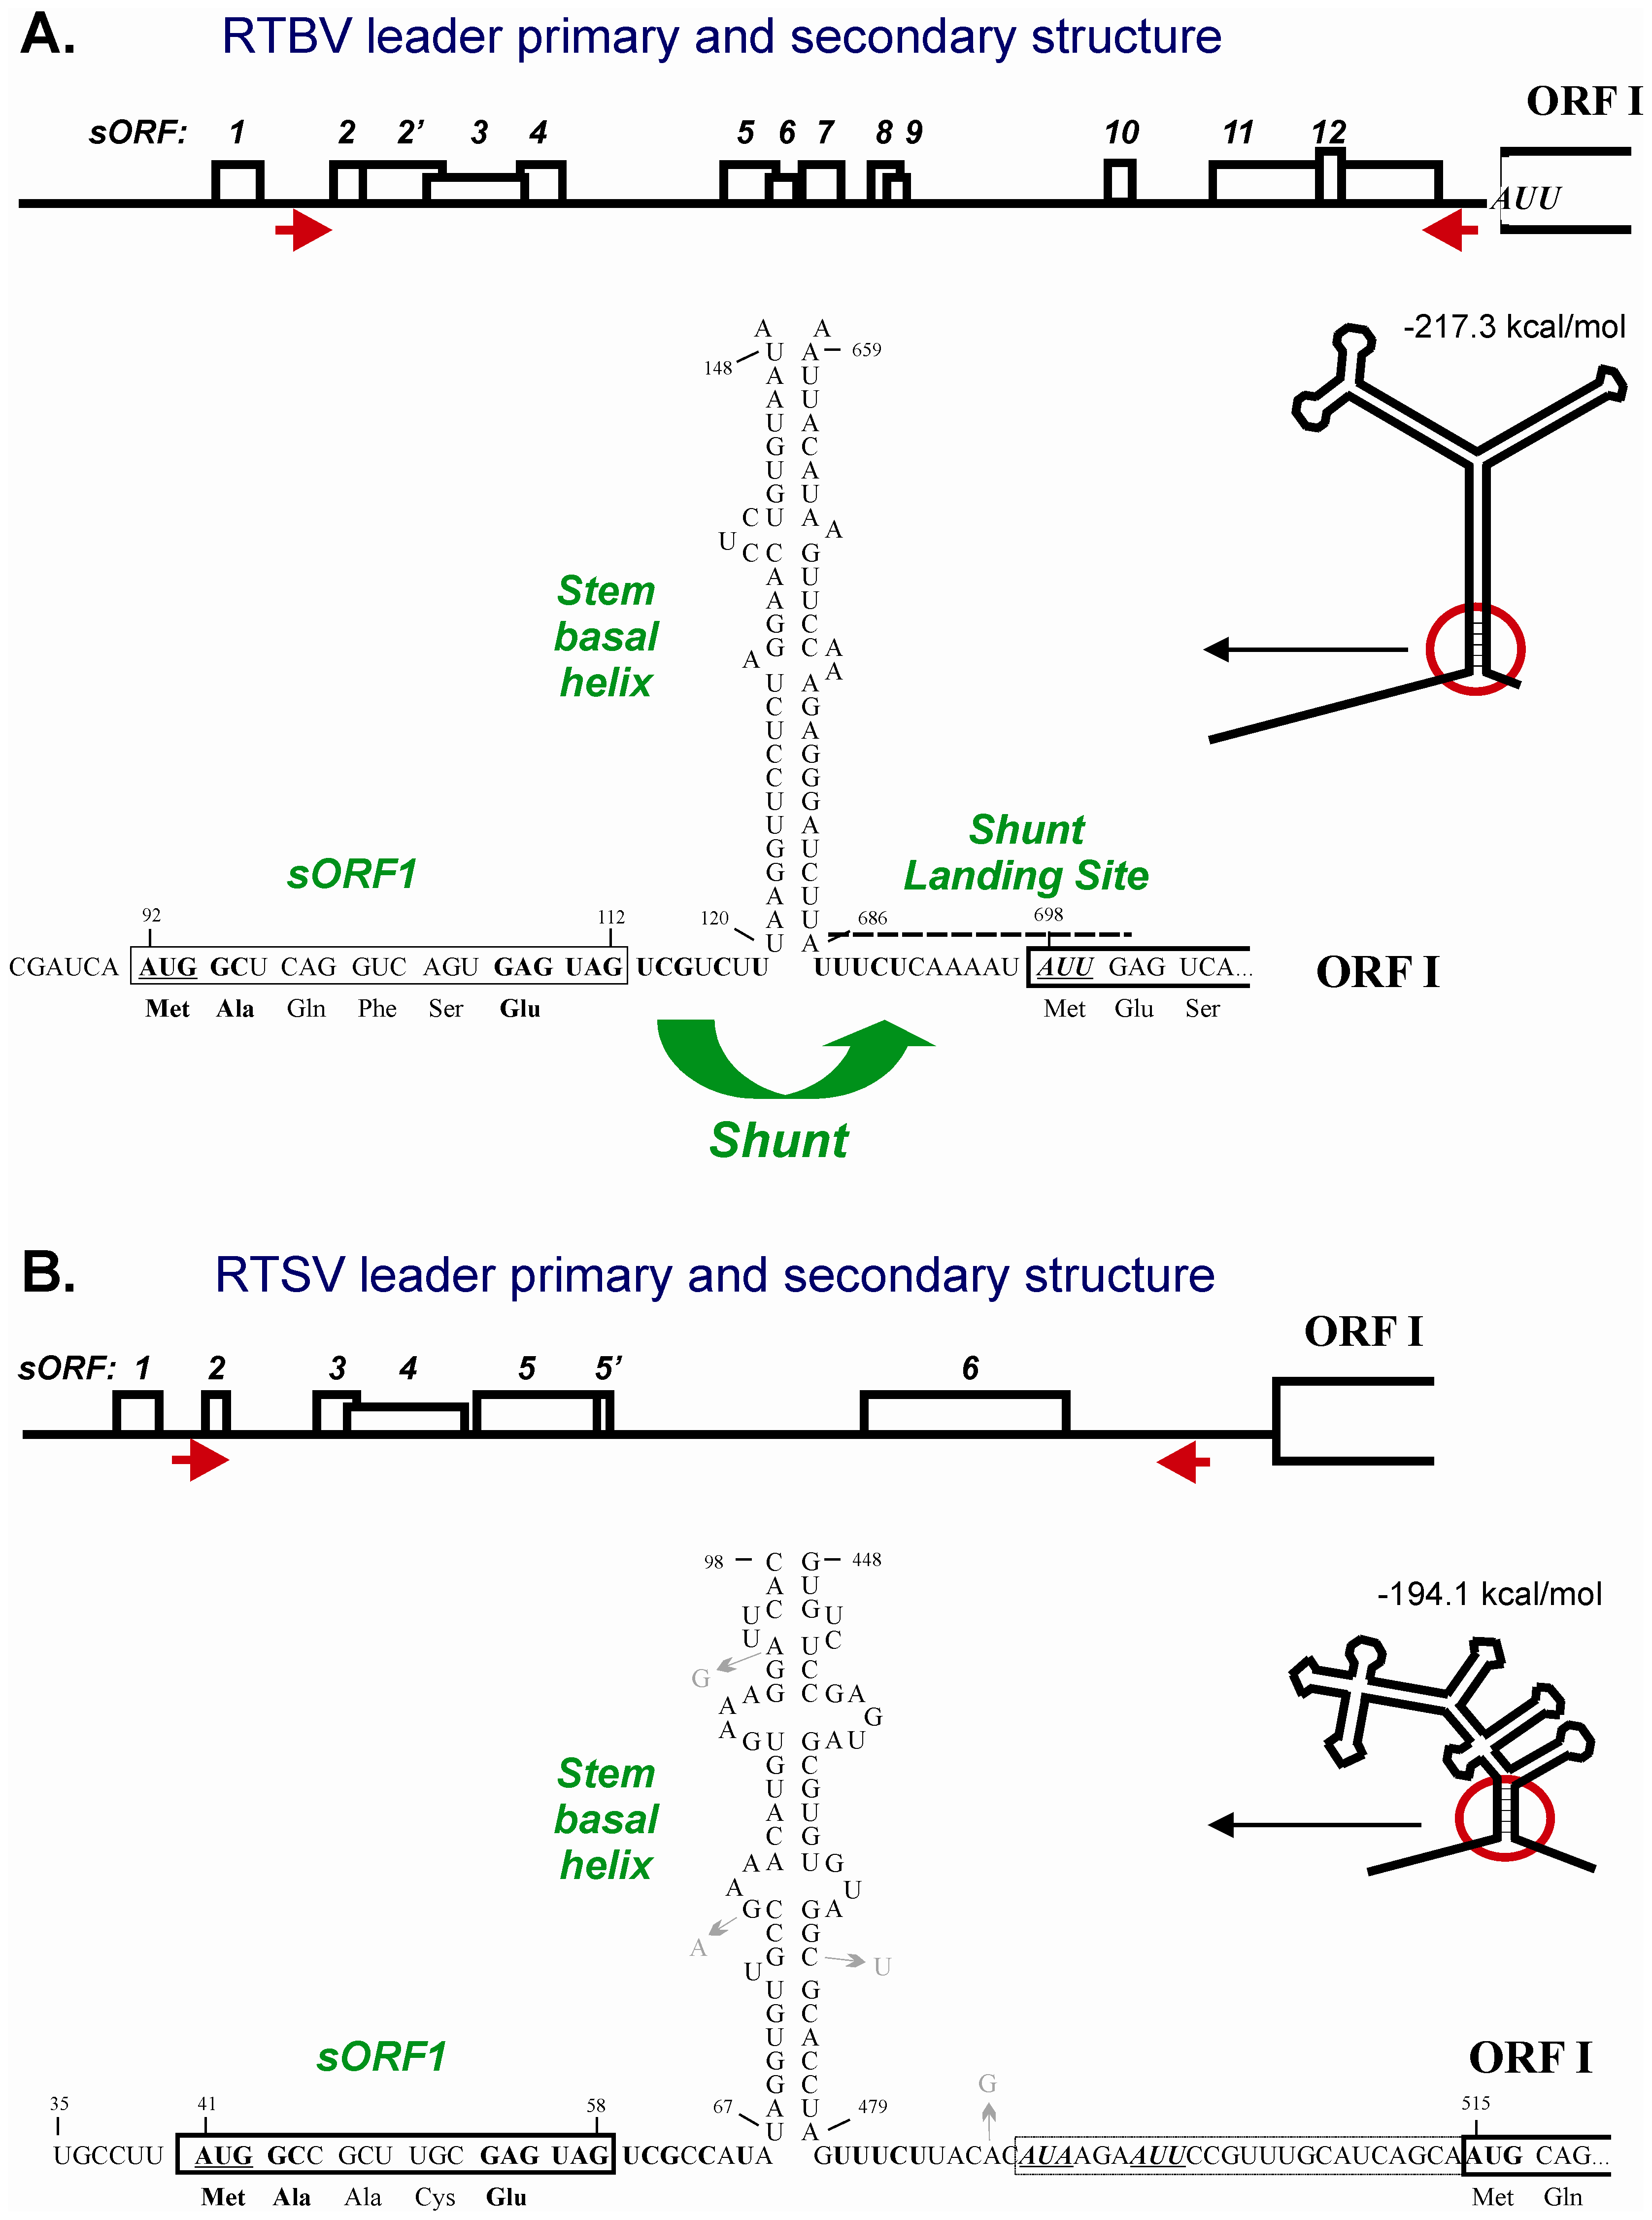 Conserved shunt configurations in the RTBV and RTSV leader sequences.